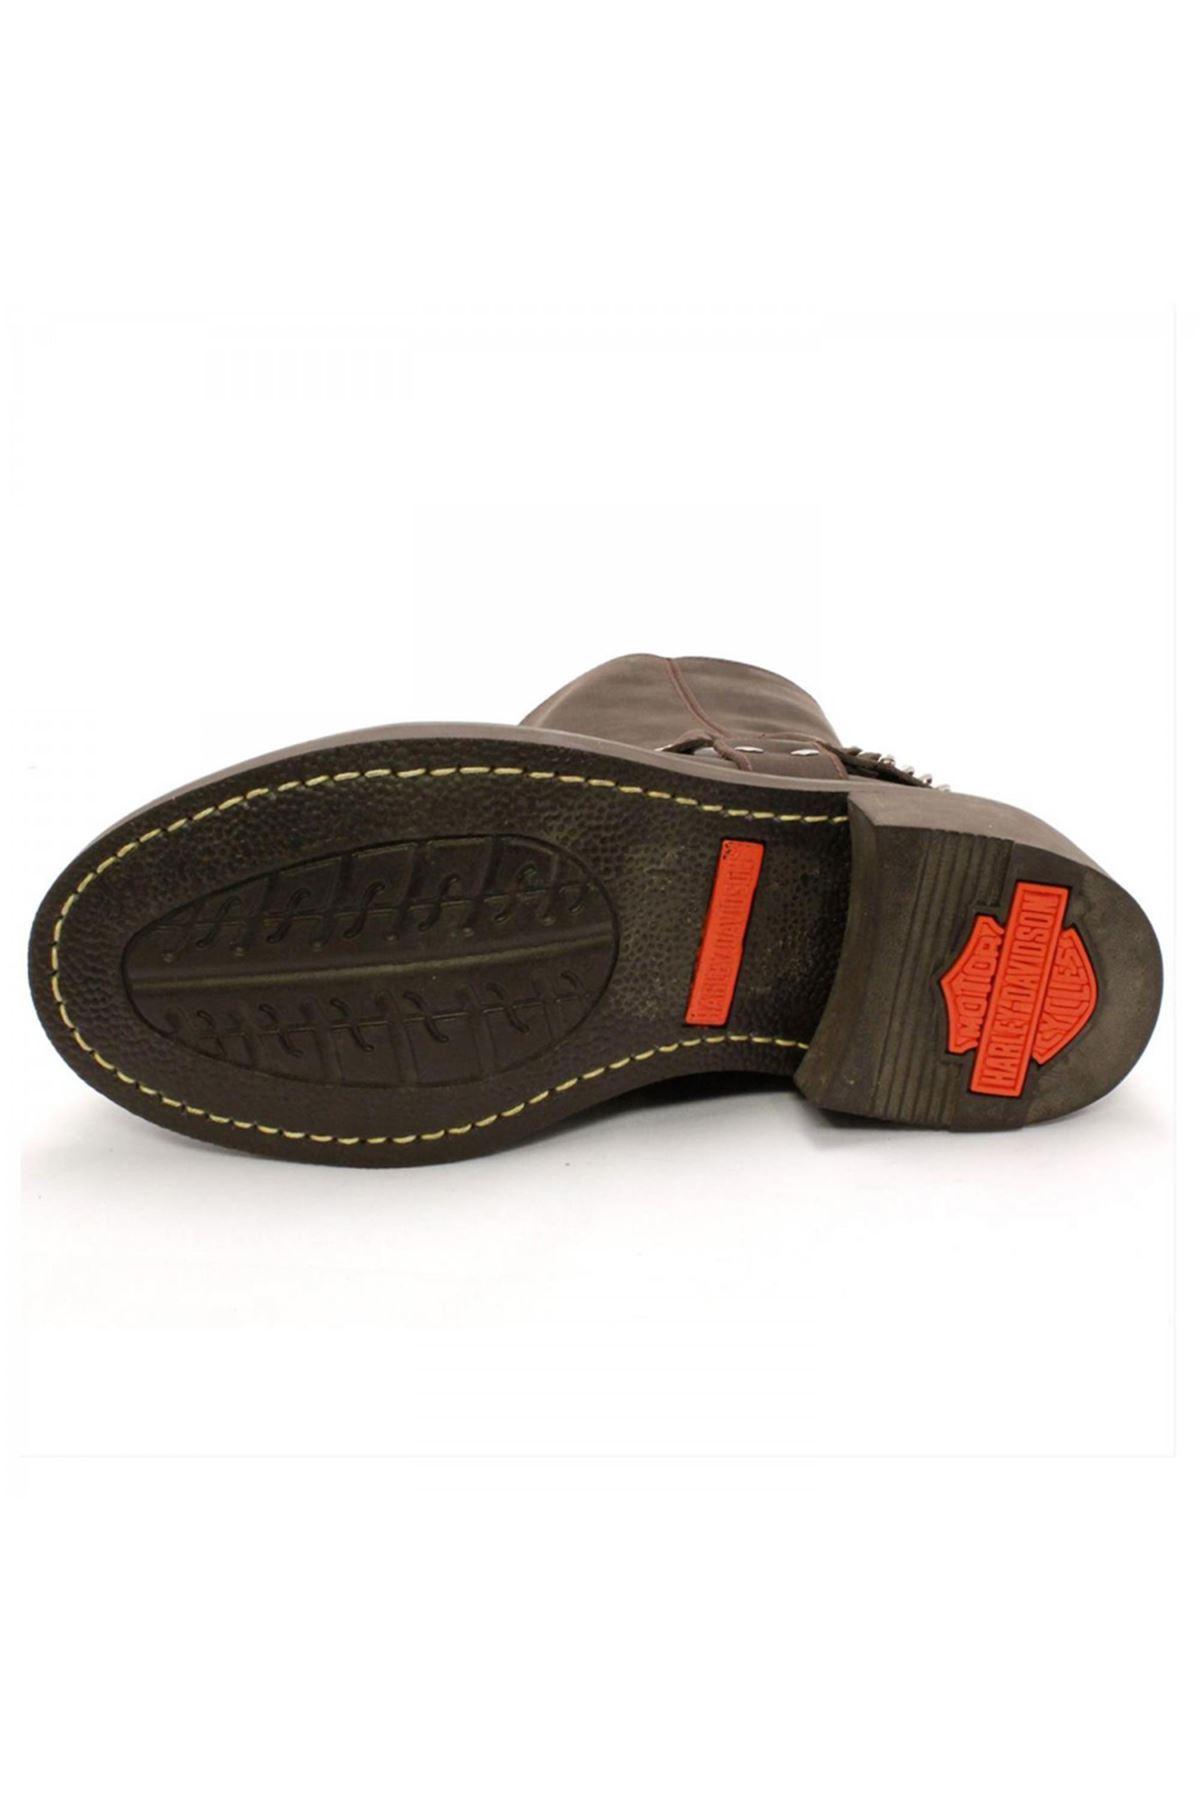 Harley Davıdson 10589 Brown